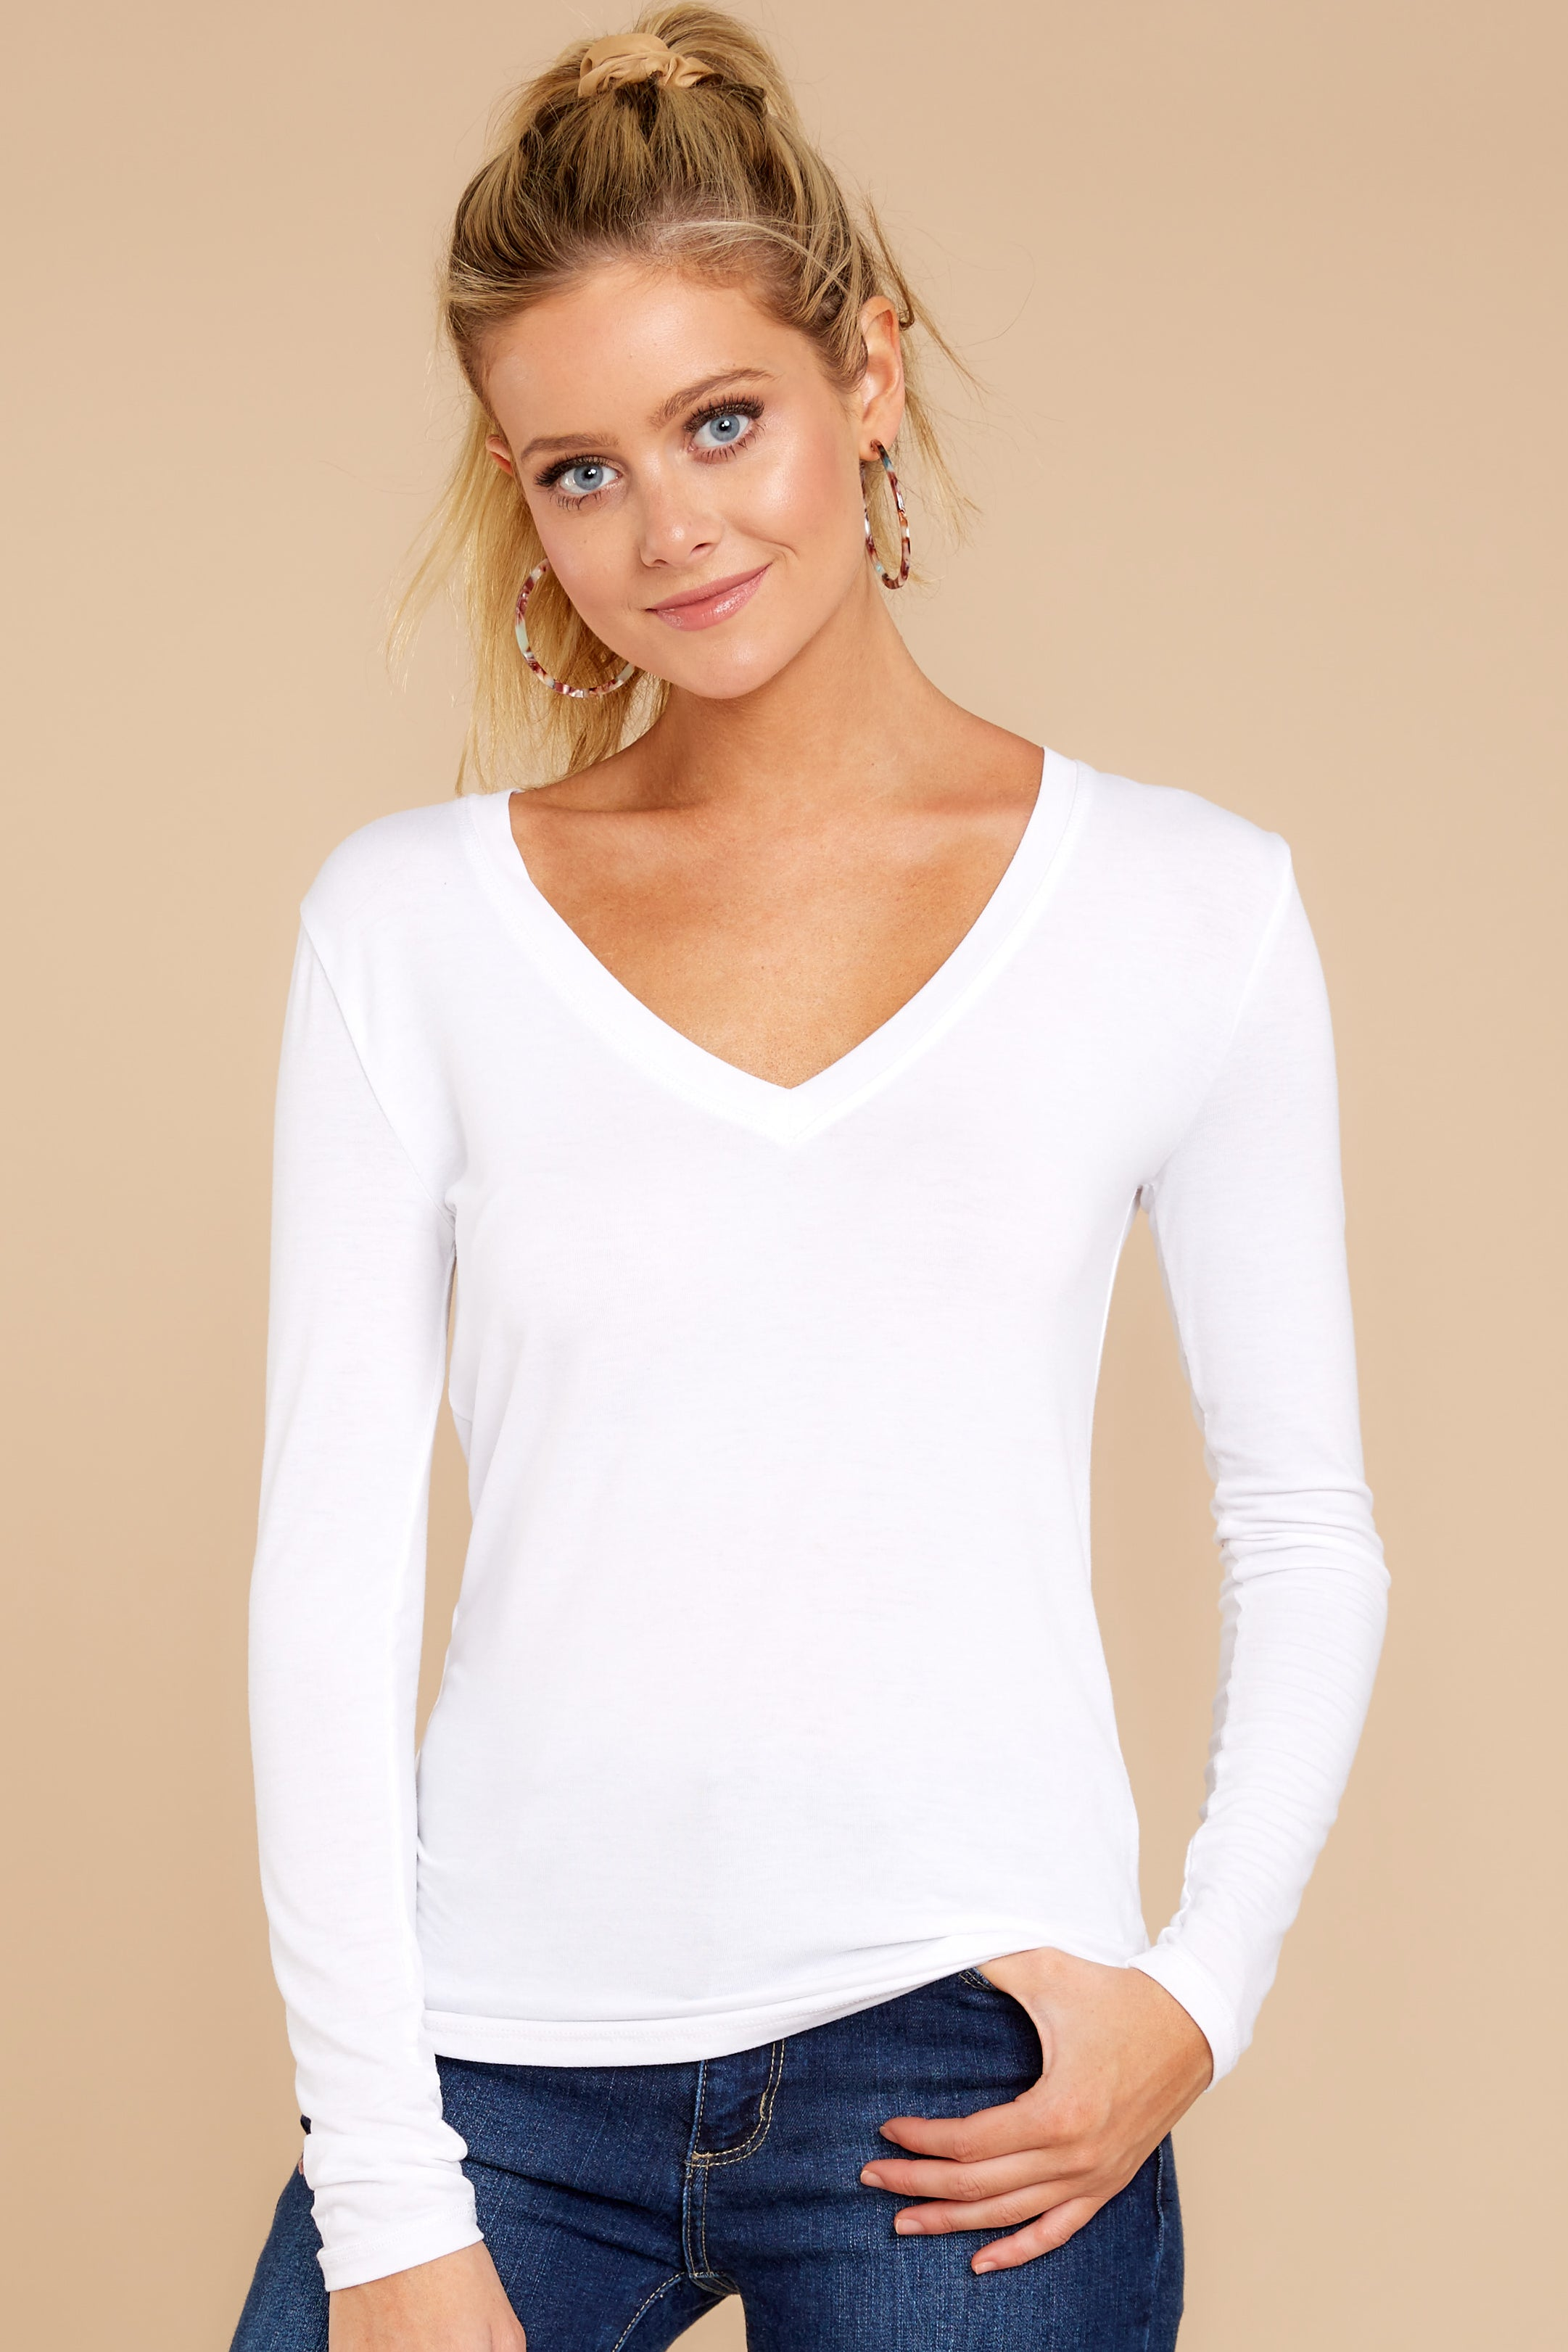 46ecf993a6c5e2 Z Supply Fitted Long Sleeve V Neck Tee - White Top - Tee - $42.00 ...